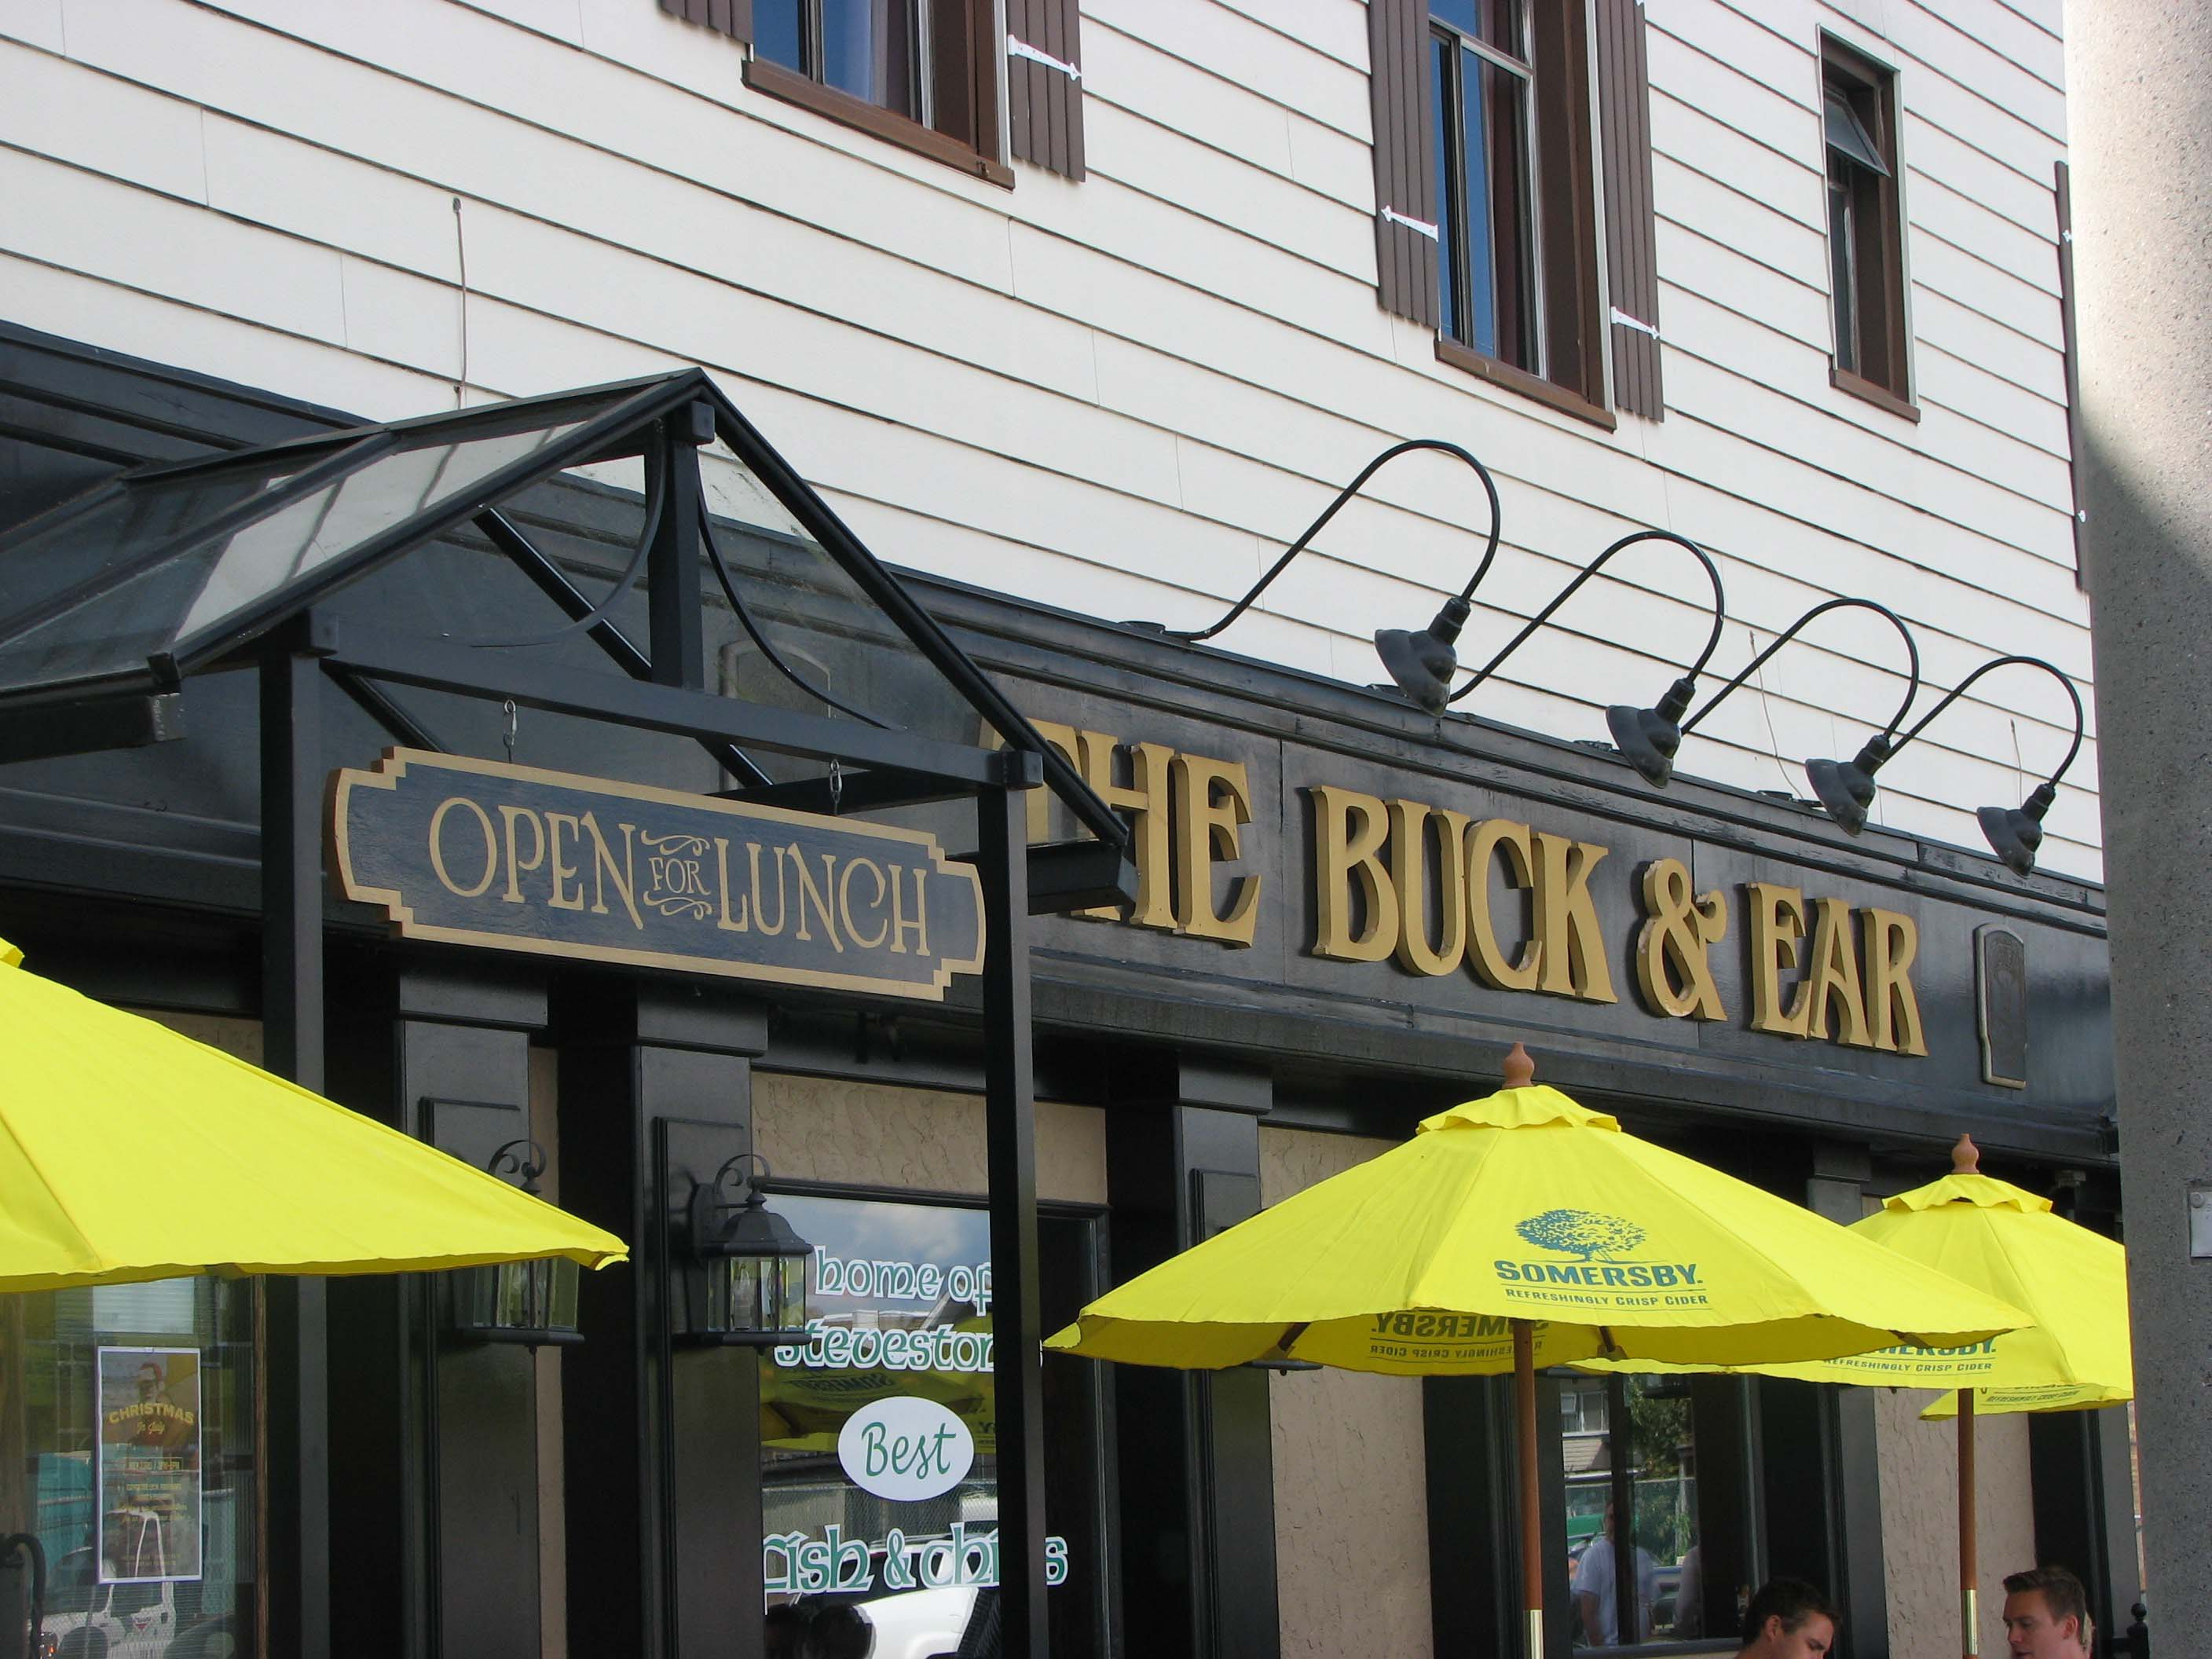 Front Entrance and P atio area at the Buck & Ear Pub in Steveston Harbour